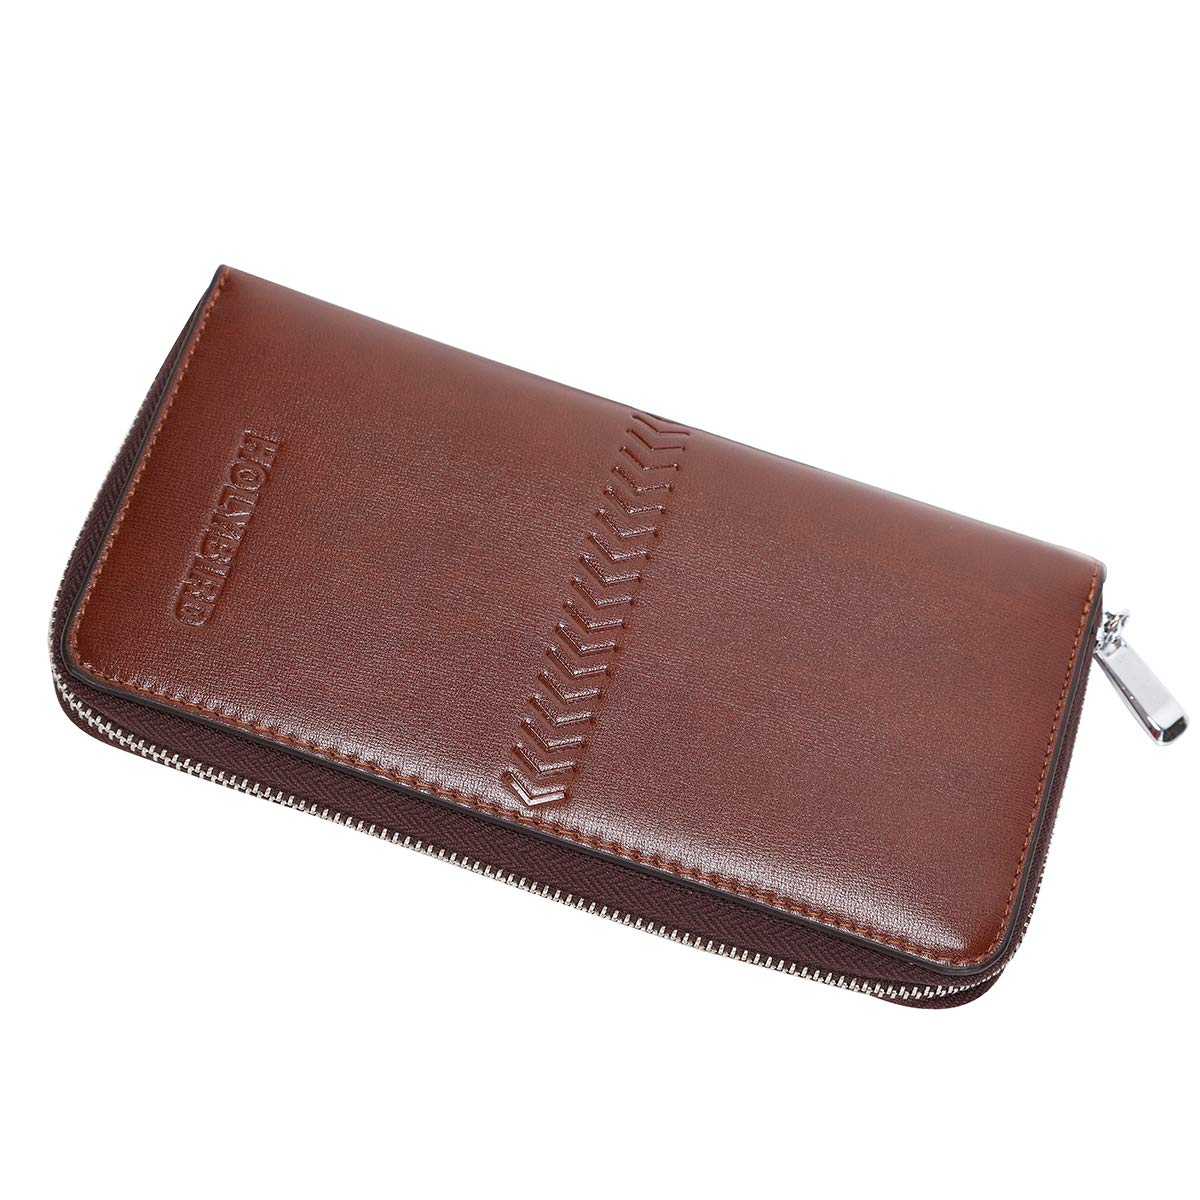 Mens Clutch Genuine Leather Handbag Organizer Checkbook Wallet Card Case